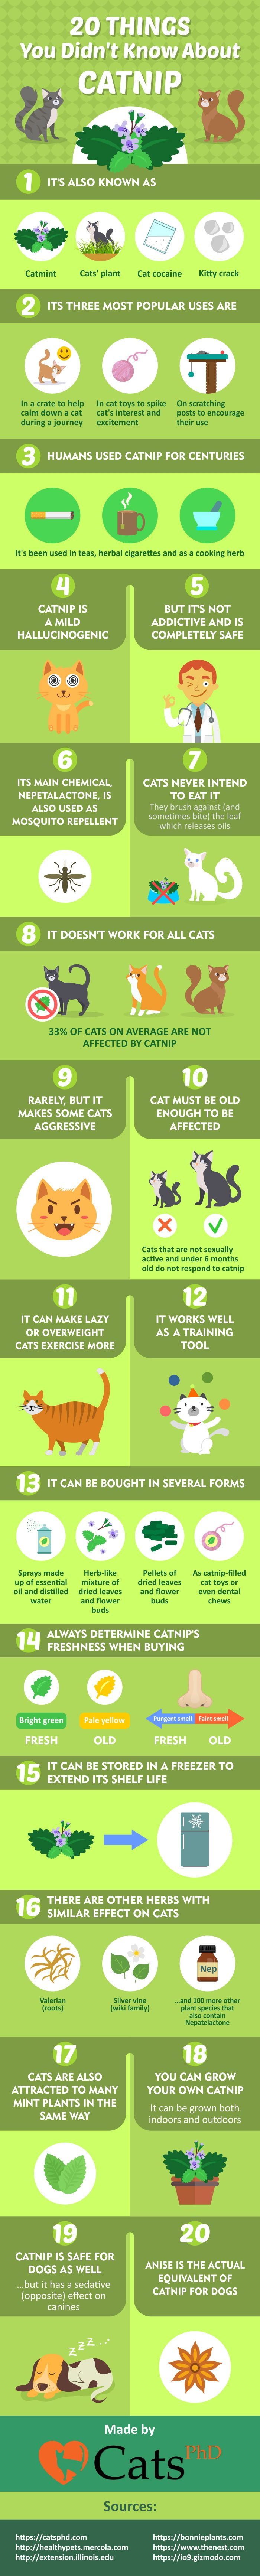 Is Catnip Safe for my Cat: 20 Things You Didn't Know About Catnip